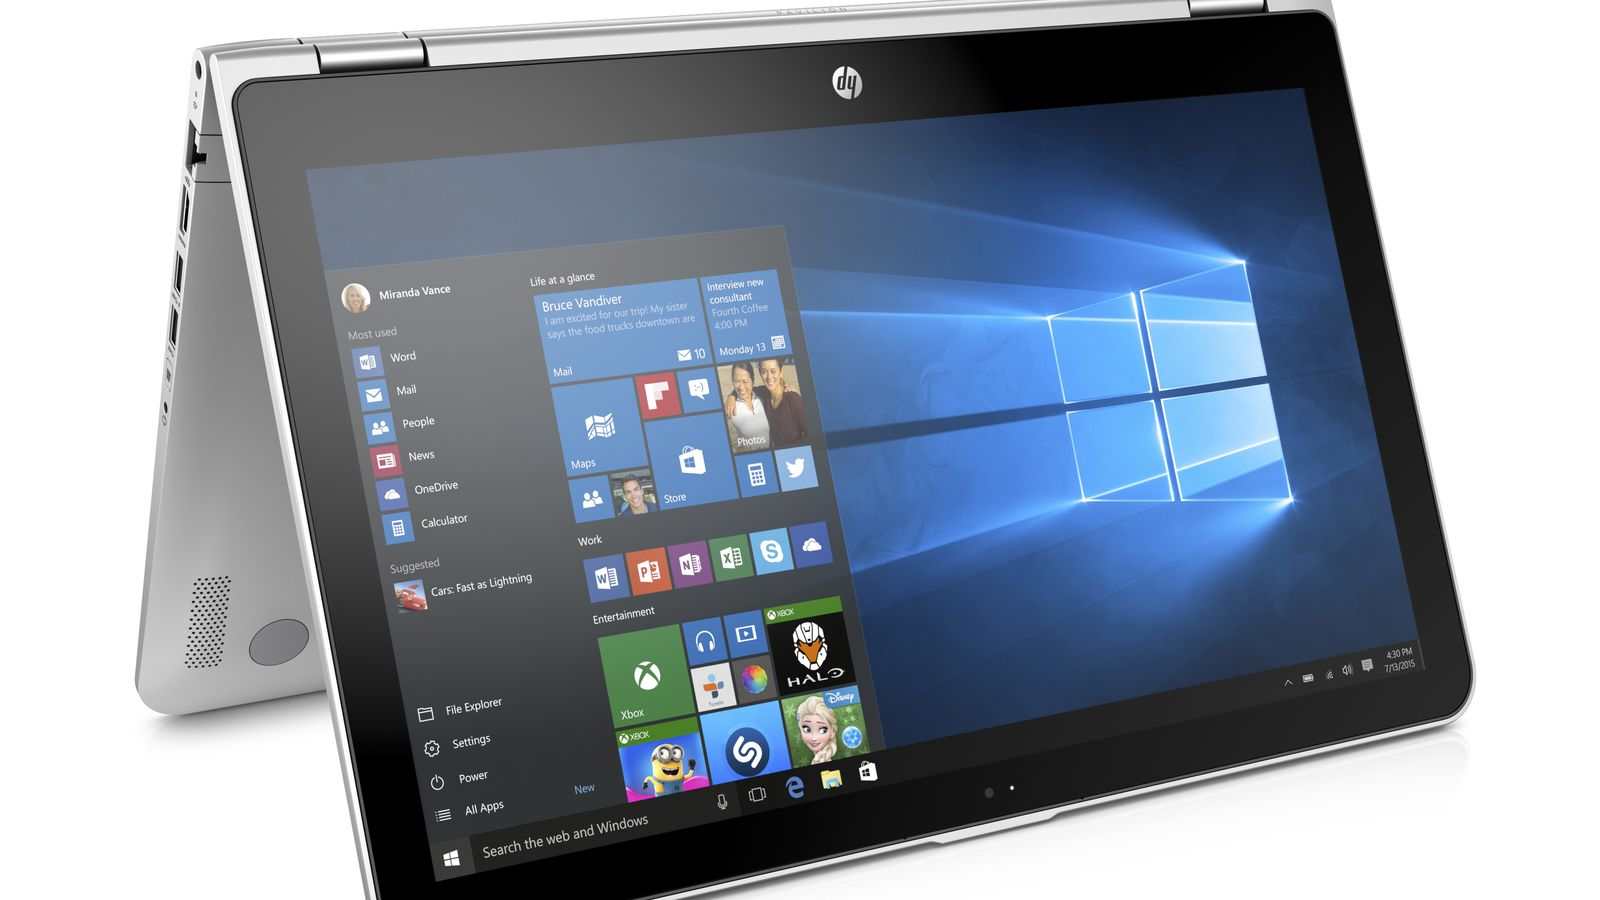 Hp 39 s pavilion x360 affordable convertible comes in 15 inch for Circuit breaker for 7 5 hp motor